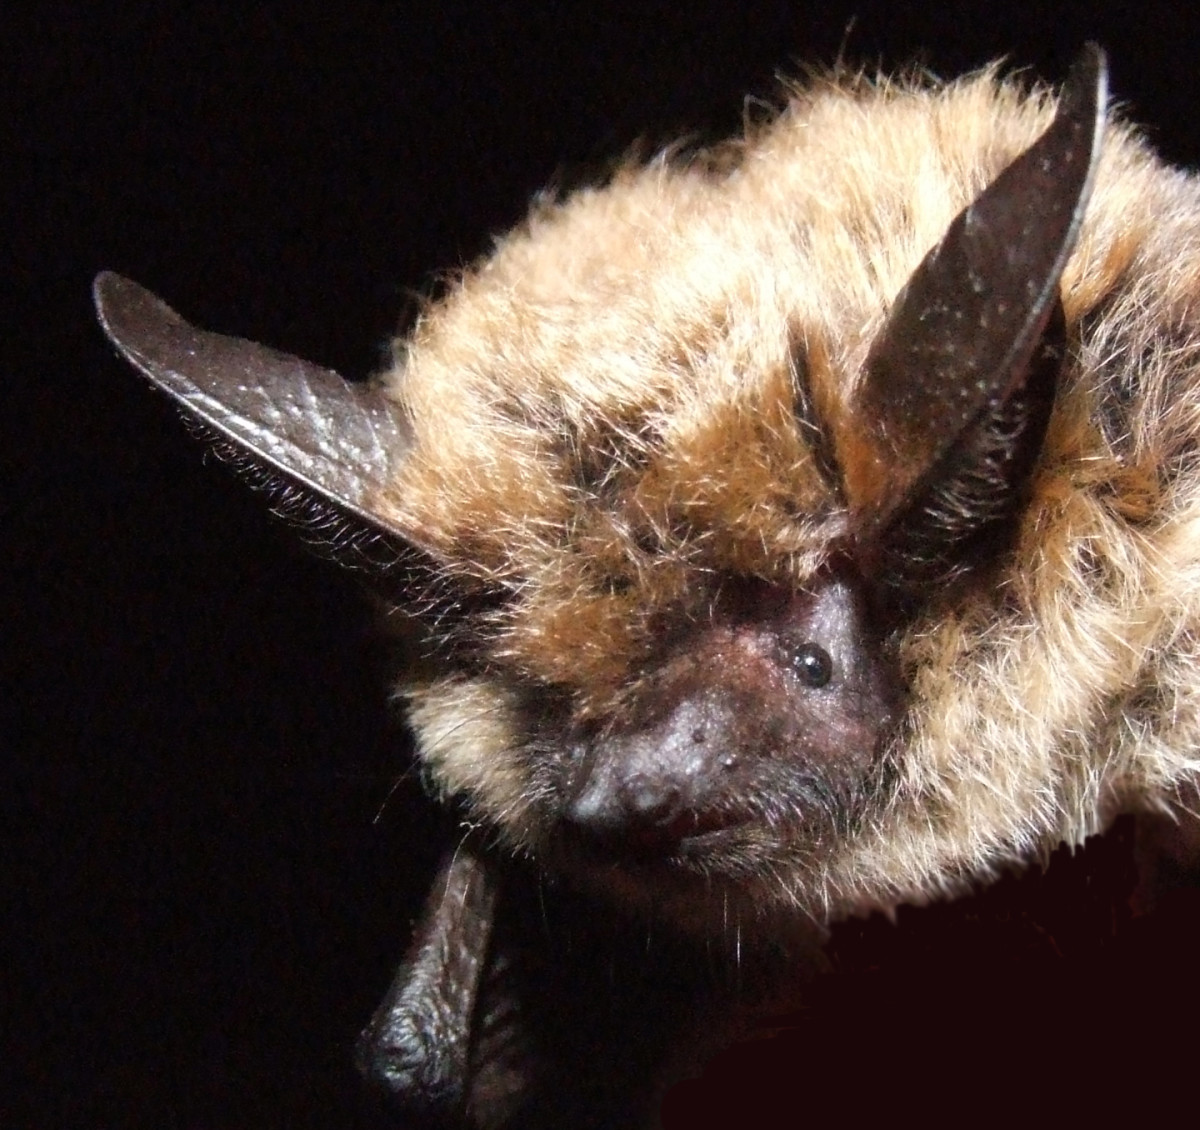 Educate yourself about the benefits of bats so you can overcome your prejudice and fear about them.  This little guy is cute, isn't he?